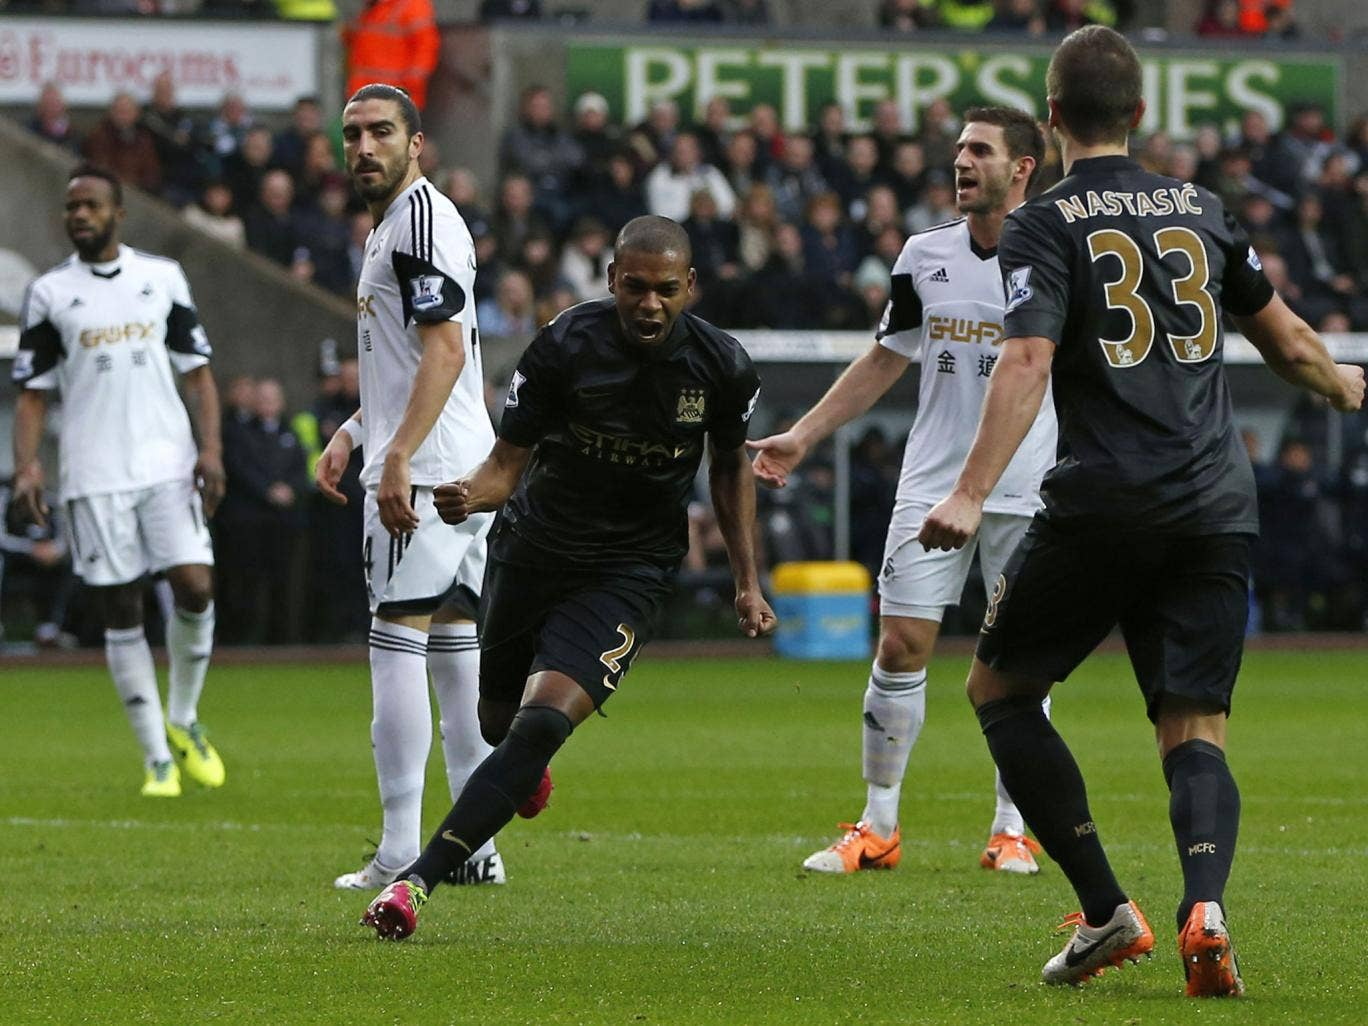 Fernandinho celebrates after scoring the first goal in Manchester City's 3-2 victory over Swansea